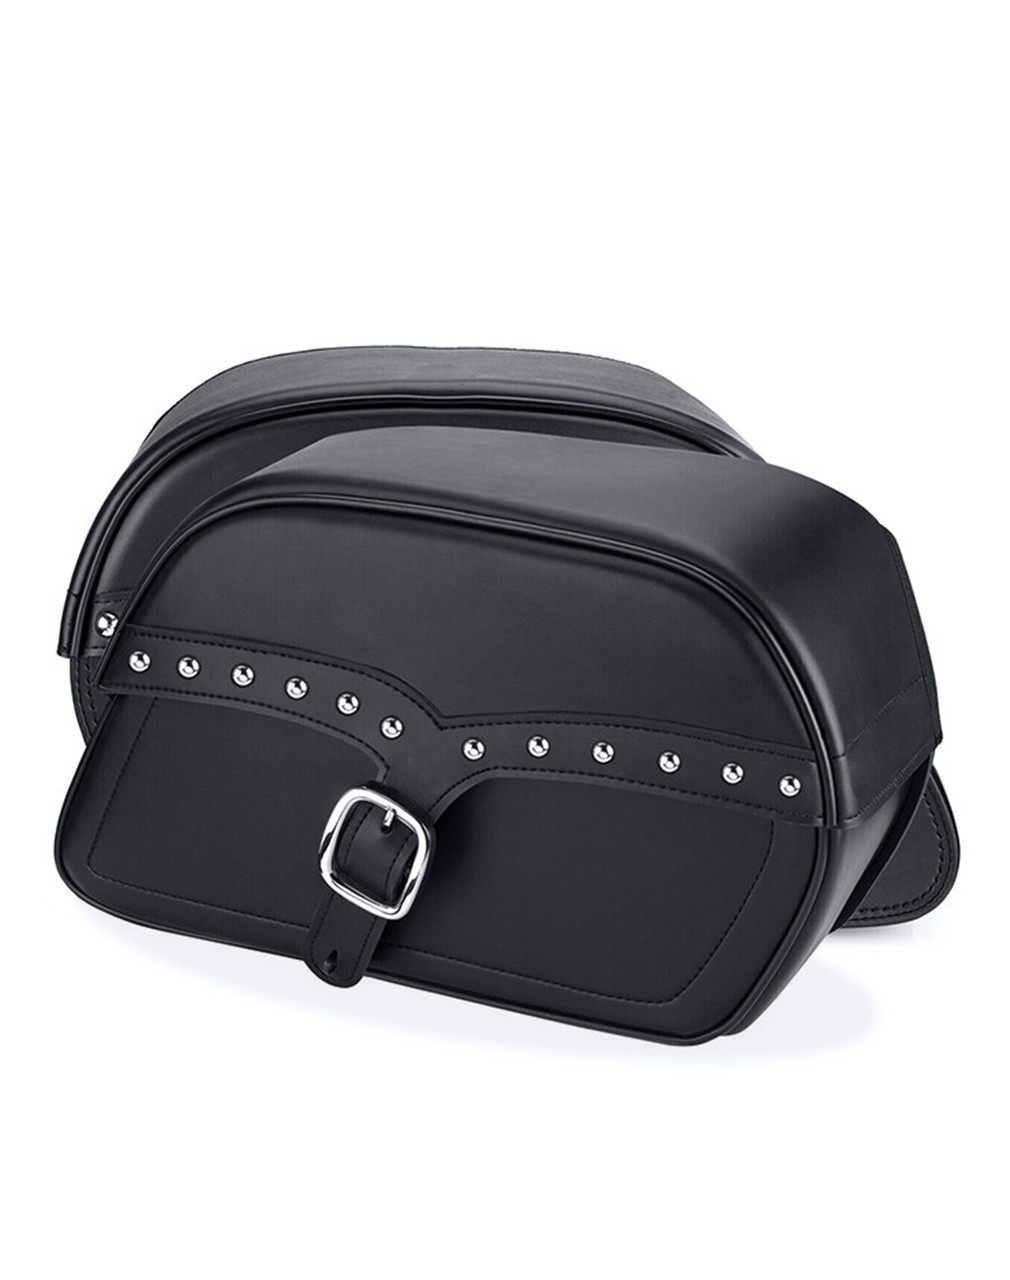 Victory High Ball SS Slant Studded Large Motorcycle Saddlebags both bags view